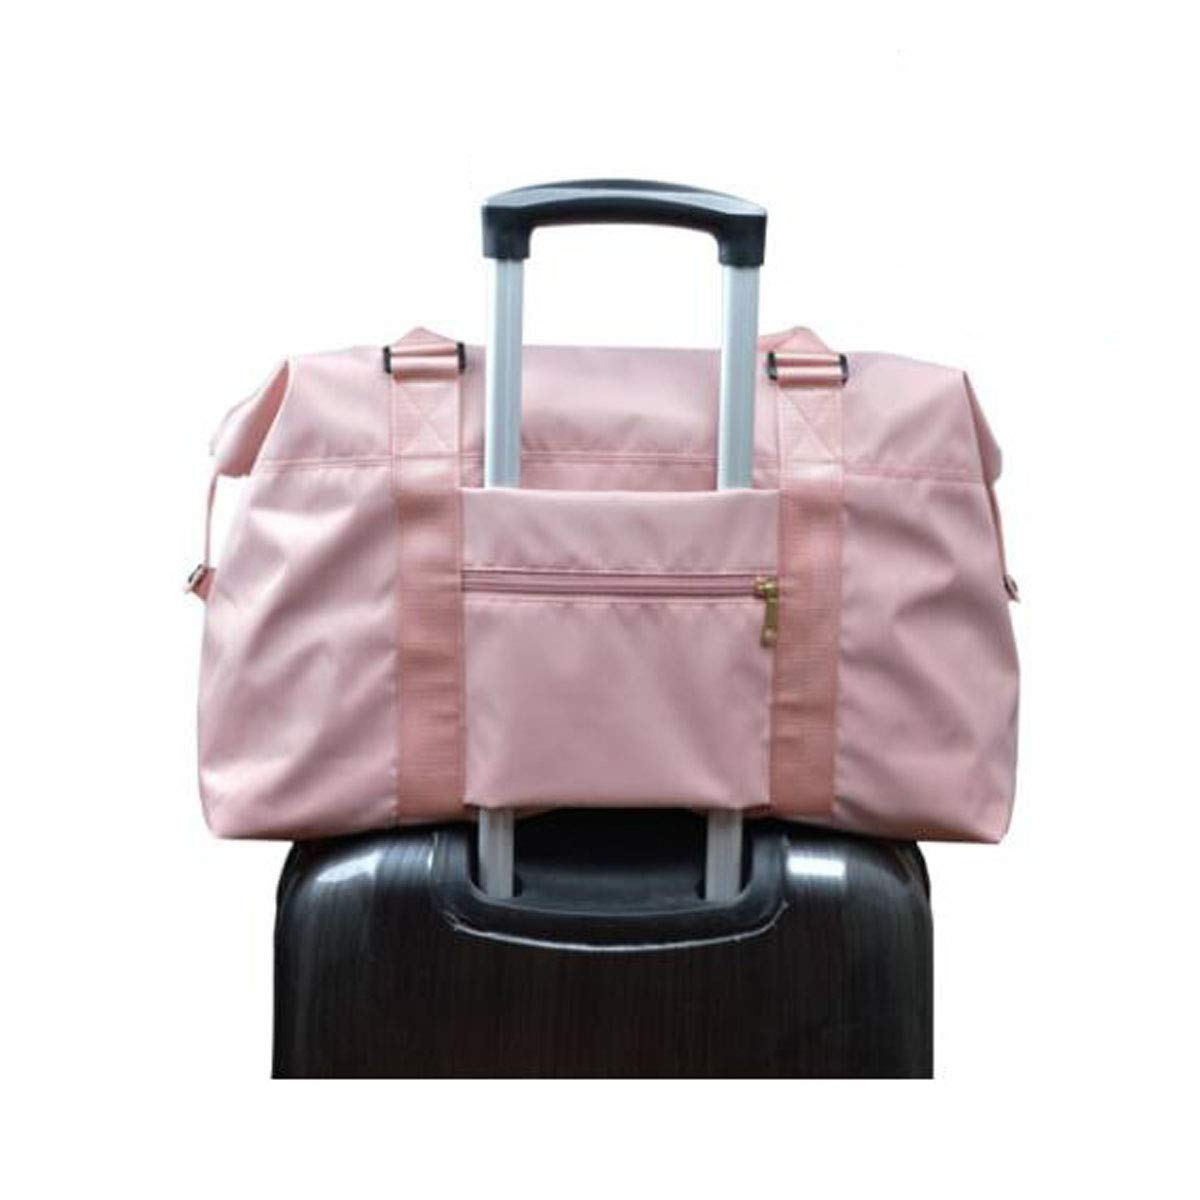 Sports Waterproof Bag Kaiyitong Fitness Bag Female Hand Bag Color : Pink, Size : 207.213.2 inch Large-Capacity Travel Bag Black Large Size: 501833